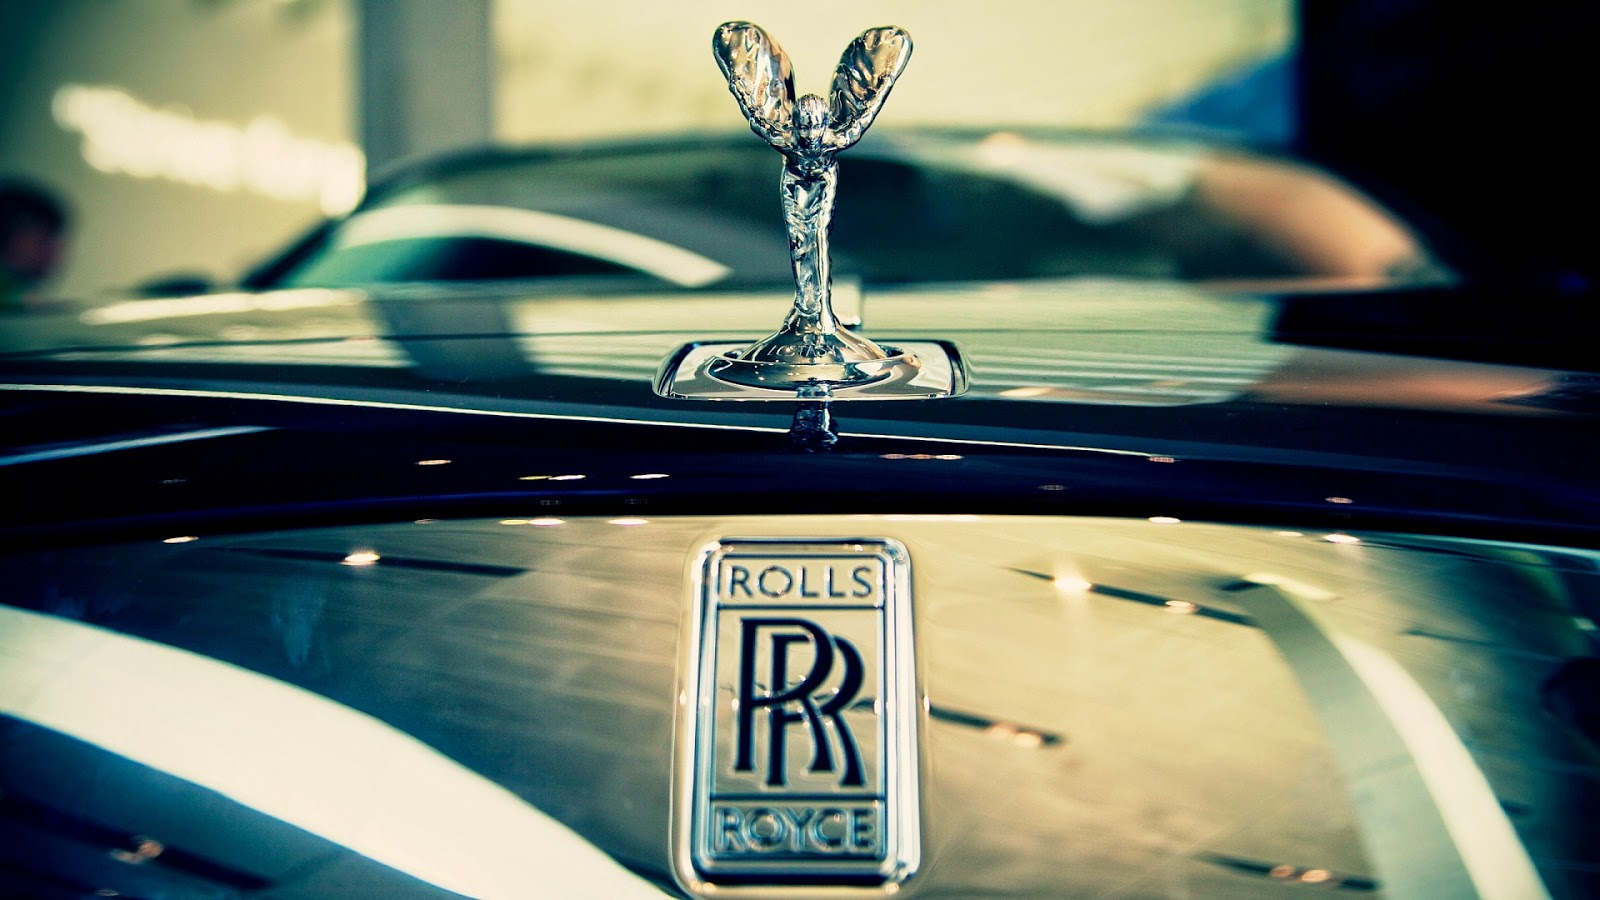 full hd rolls and royce image